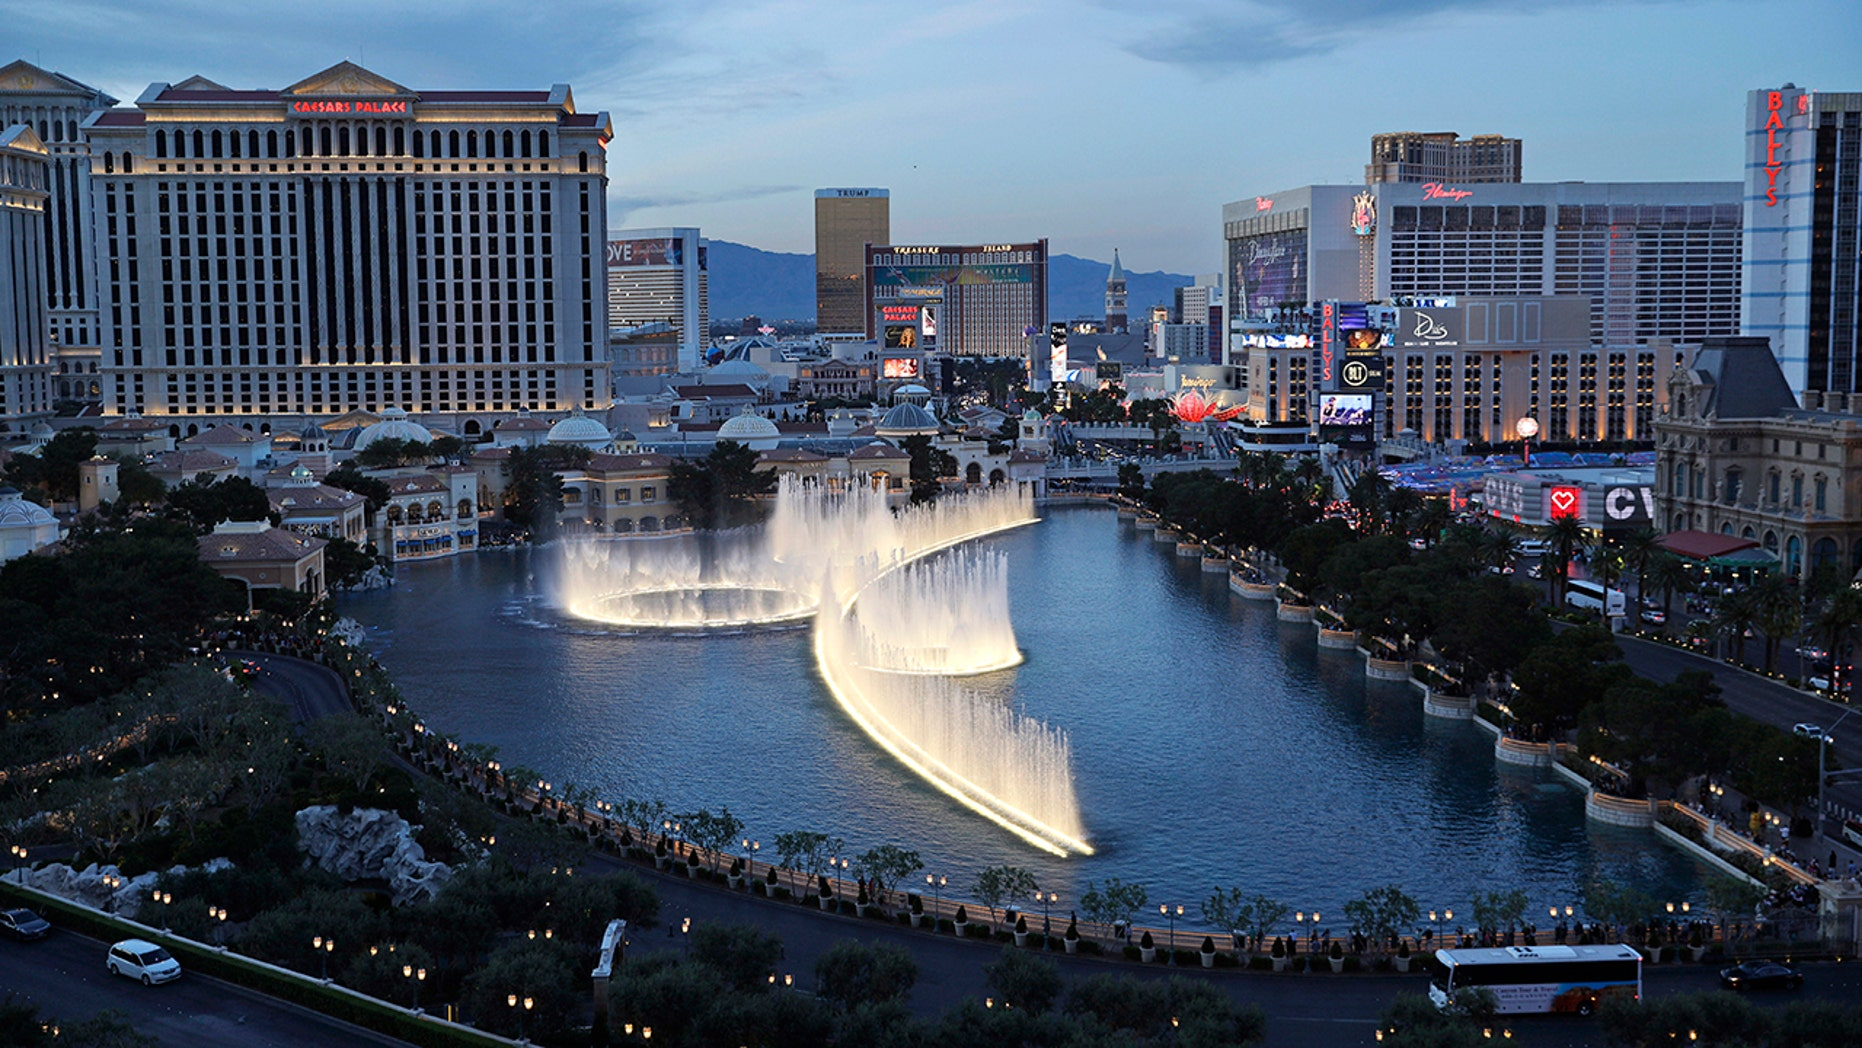 The fountains of the Bellagio hotel erupt along the Las Vegas Strip in Las Vegas.